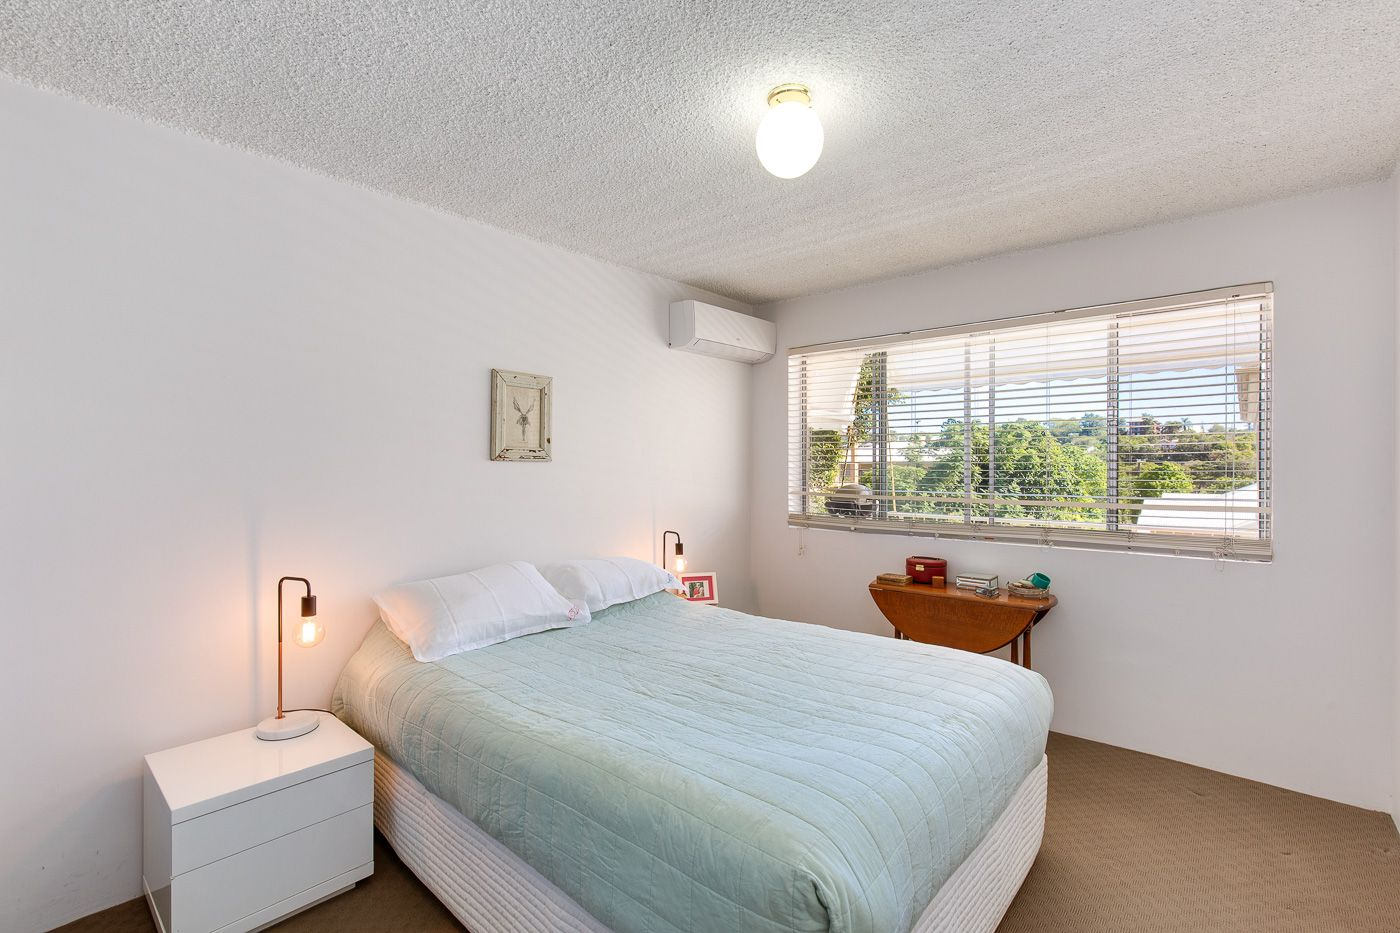 4/16 Kingsford Street Auchenflower 4066